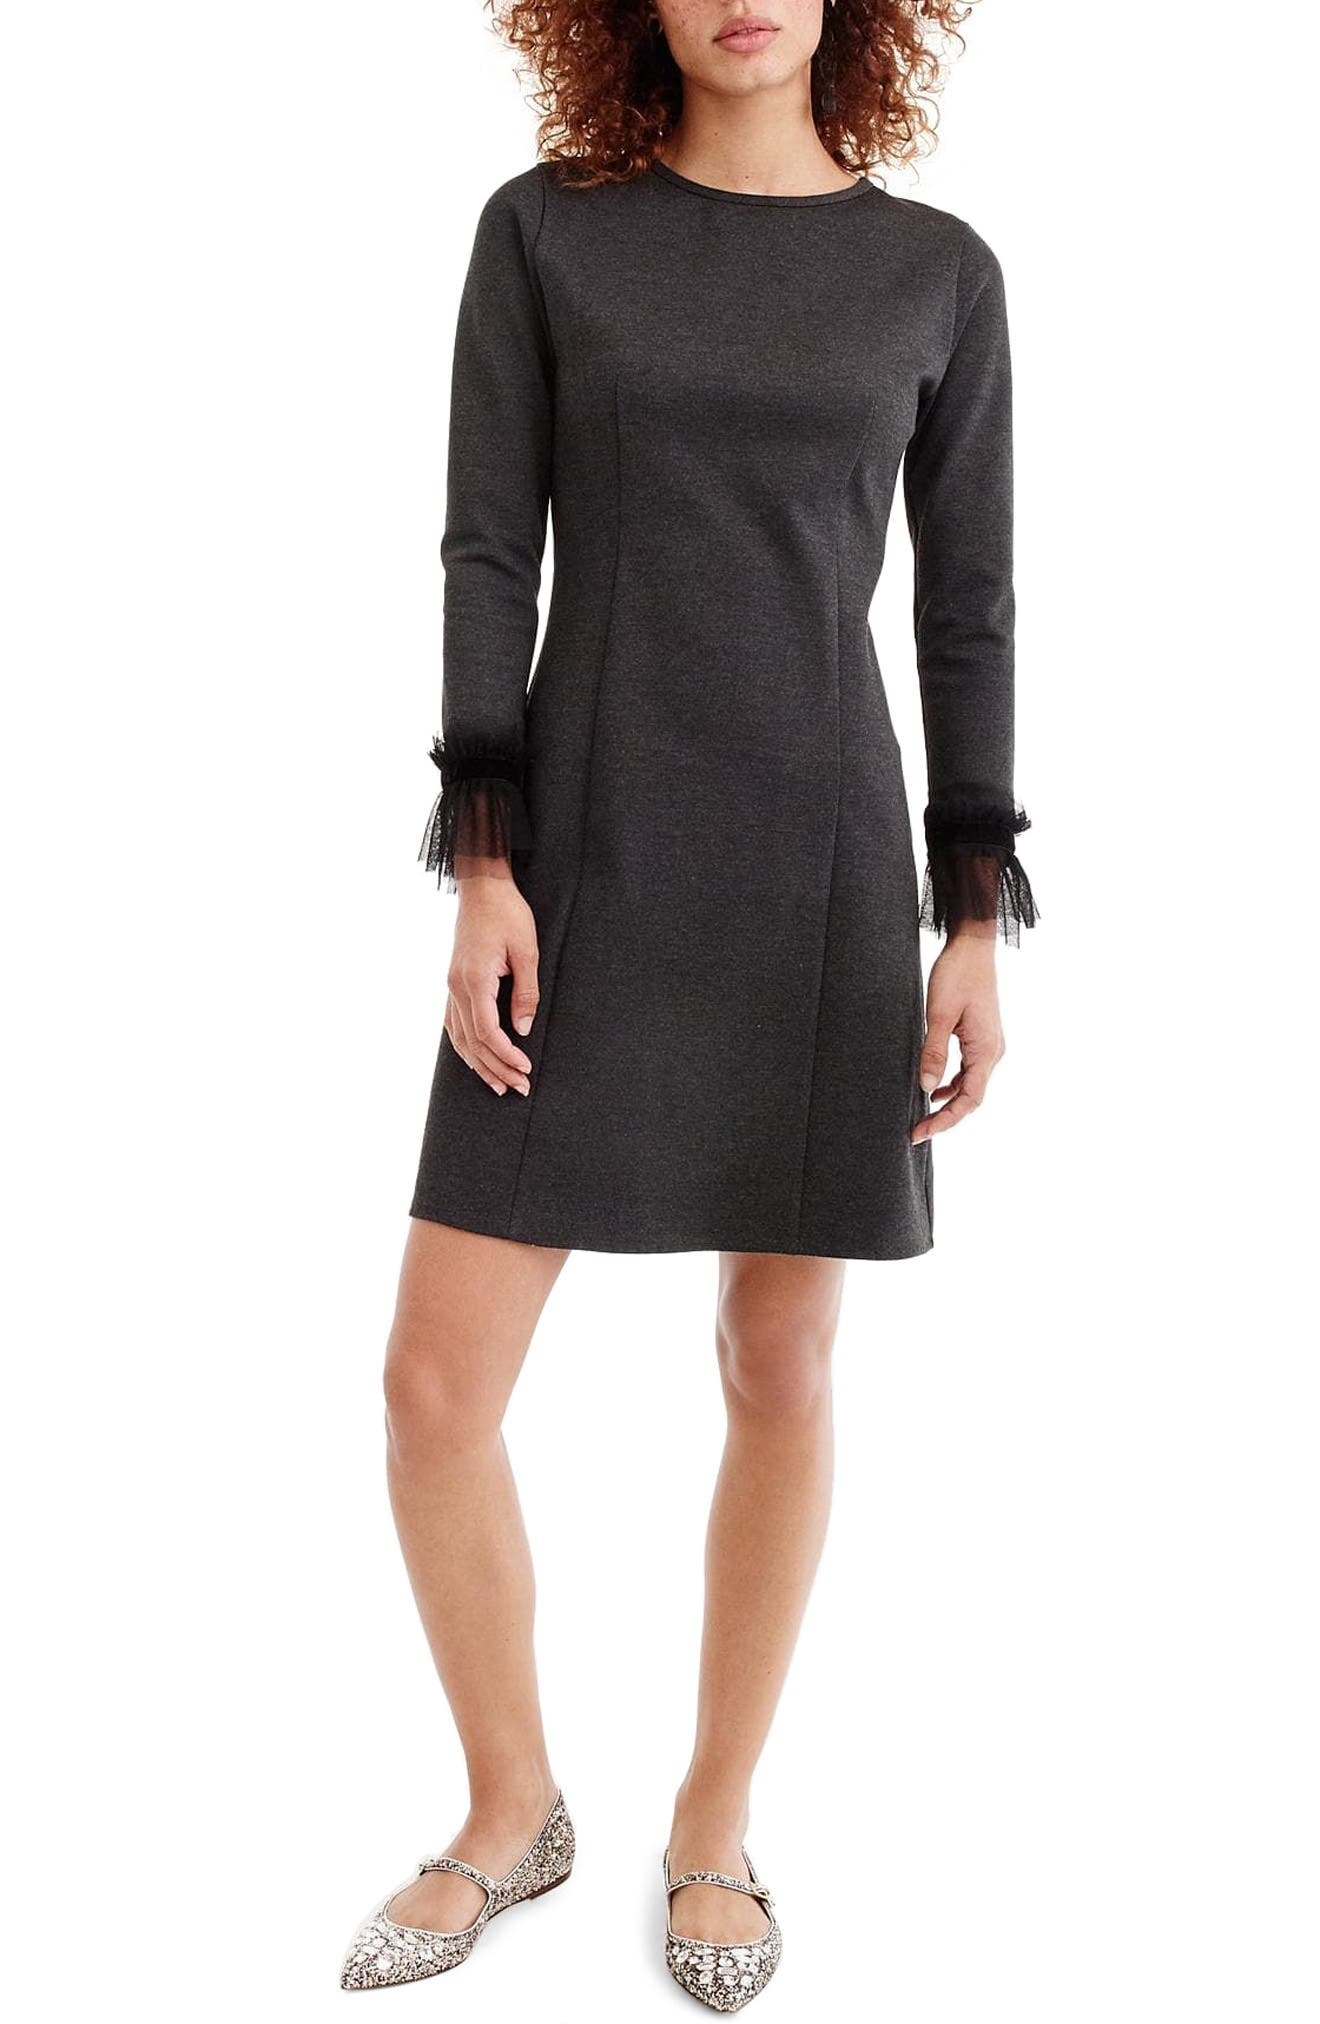 Alternate Image 1 Selected - J.Crew Tulle Trim Long Sleeve Sheath Dress